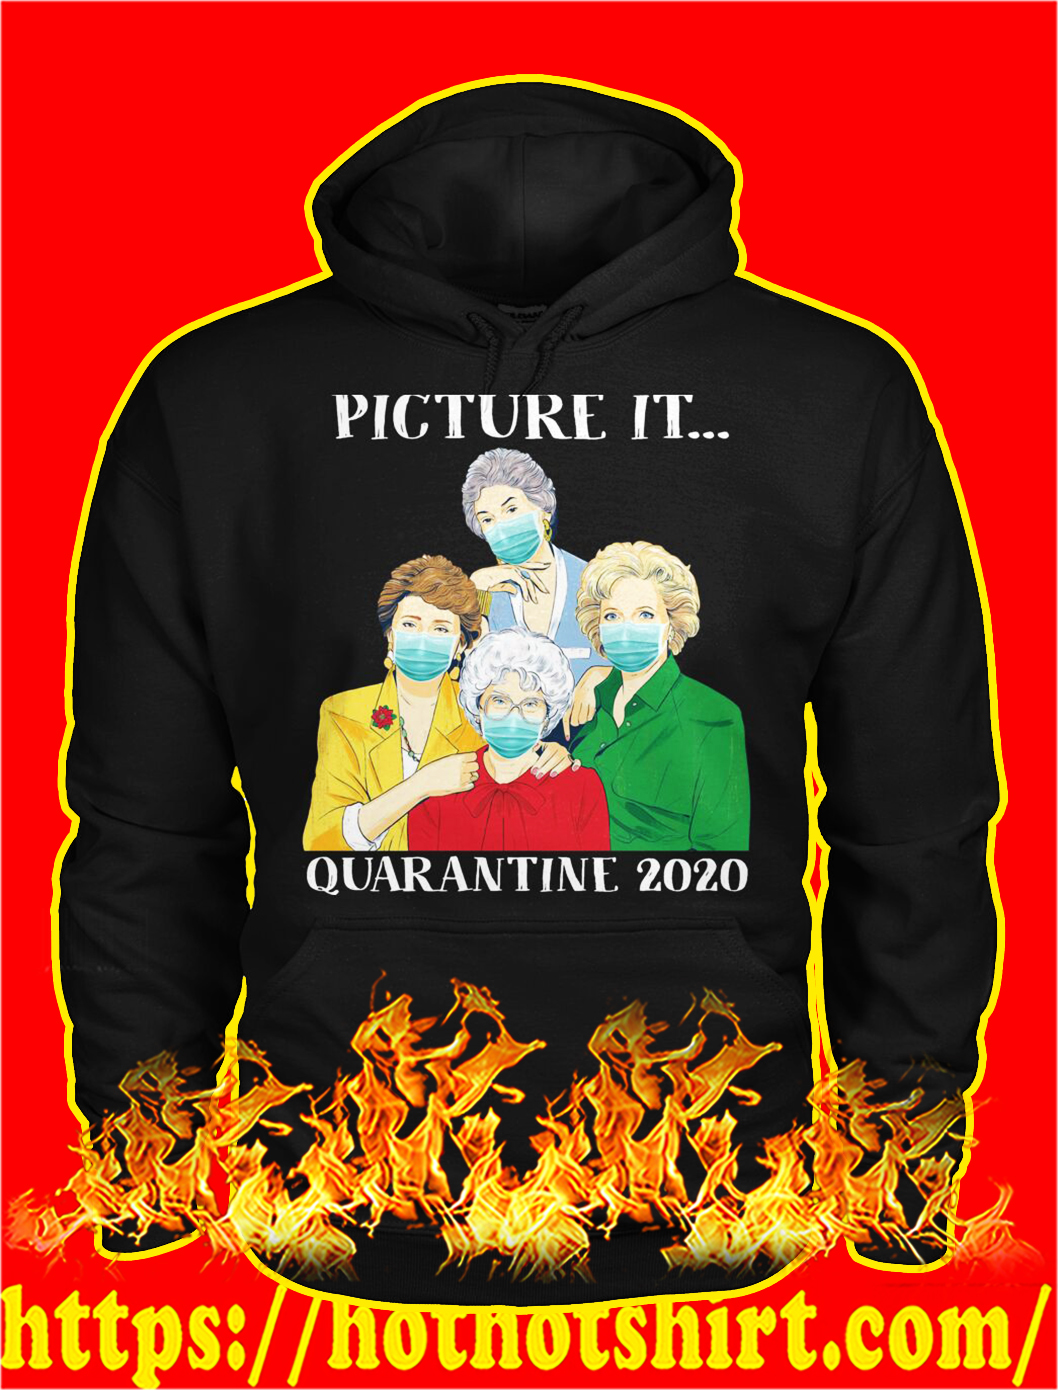 The golden girls picture it quarantine 2020 hoodie